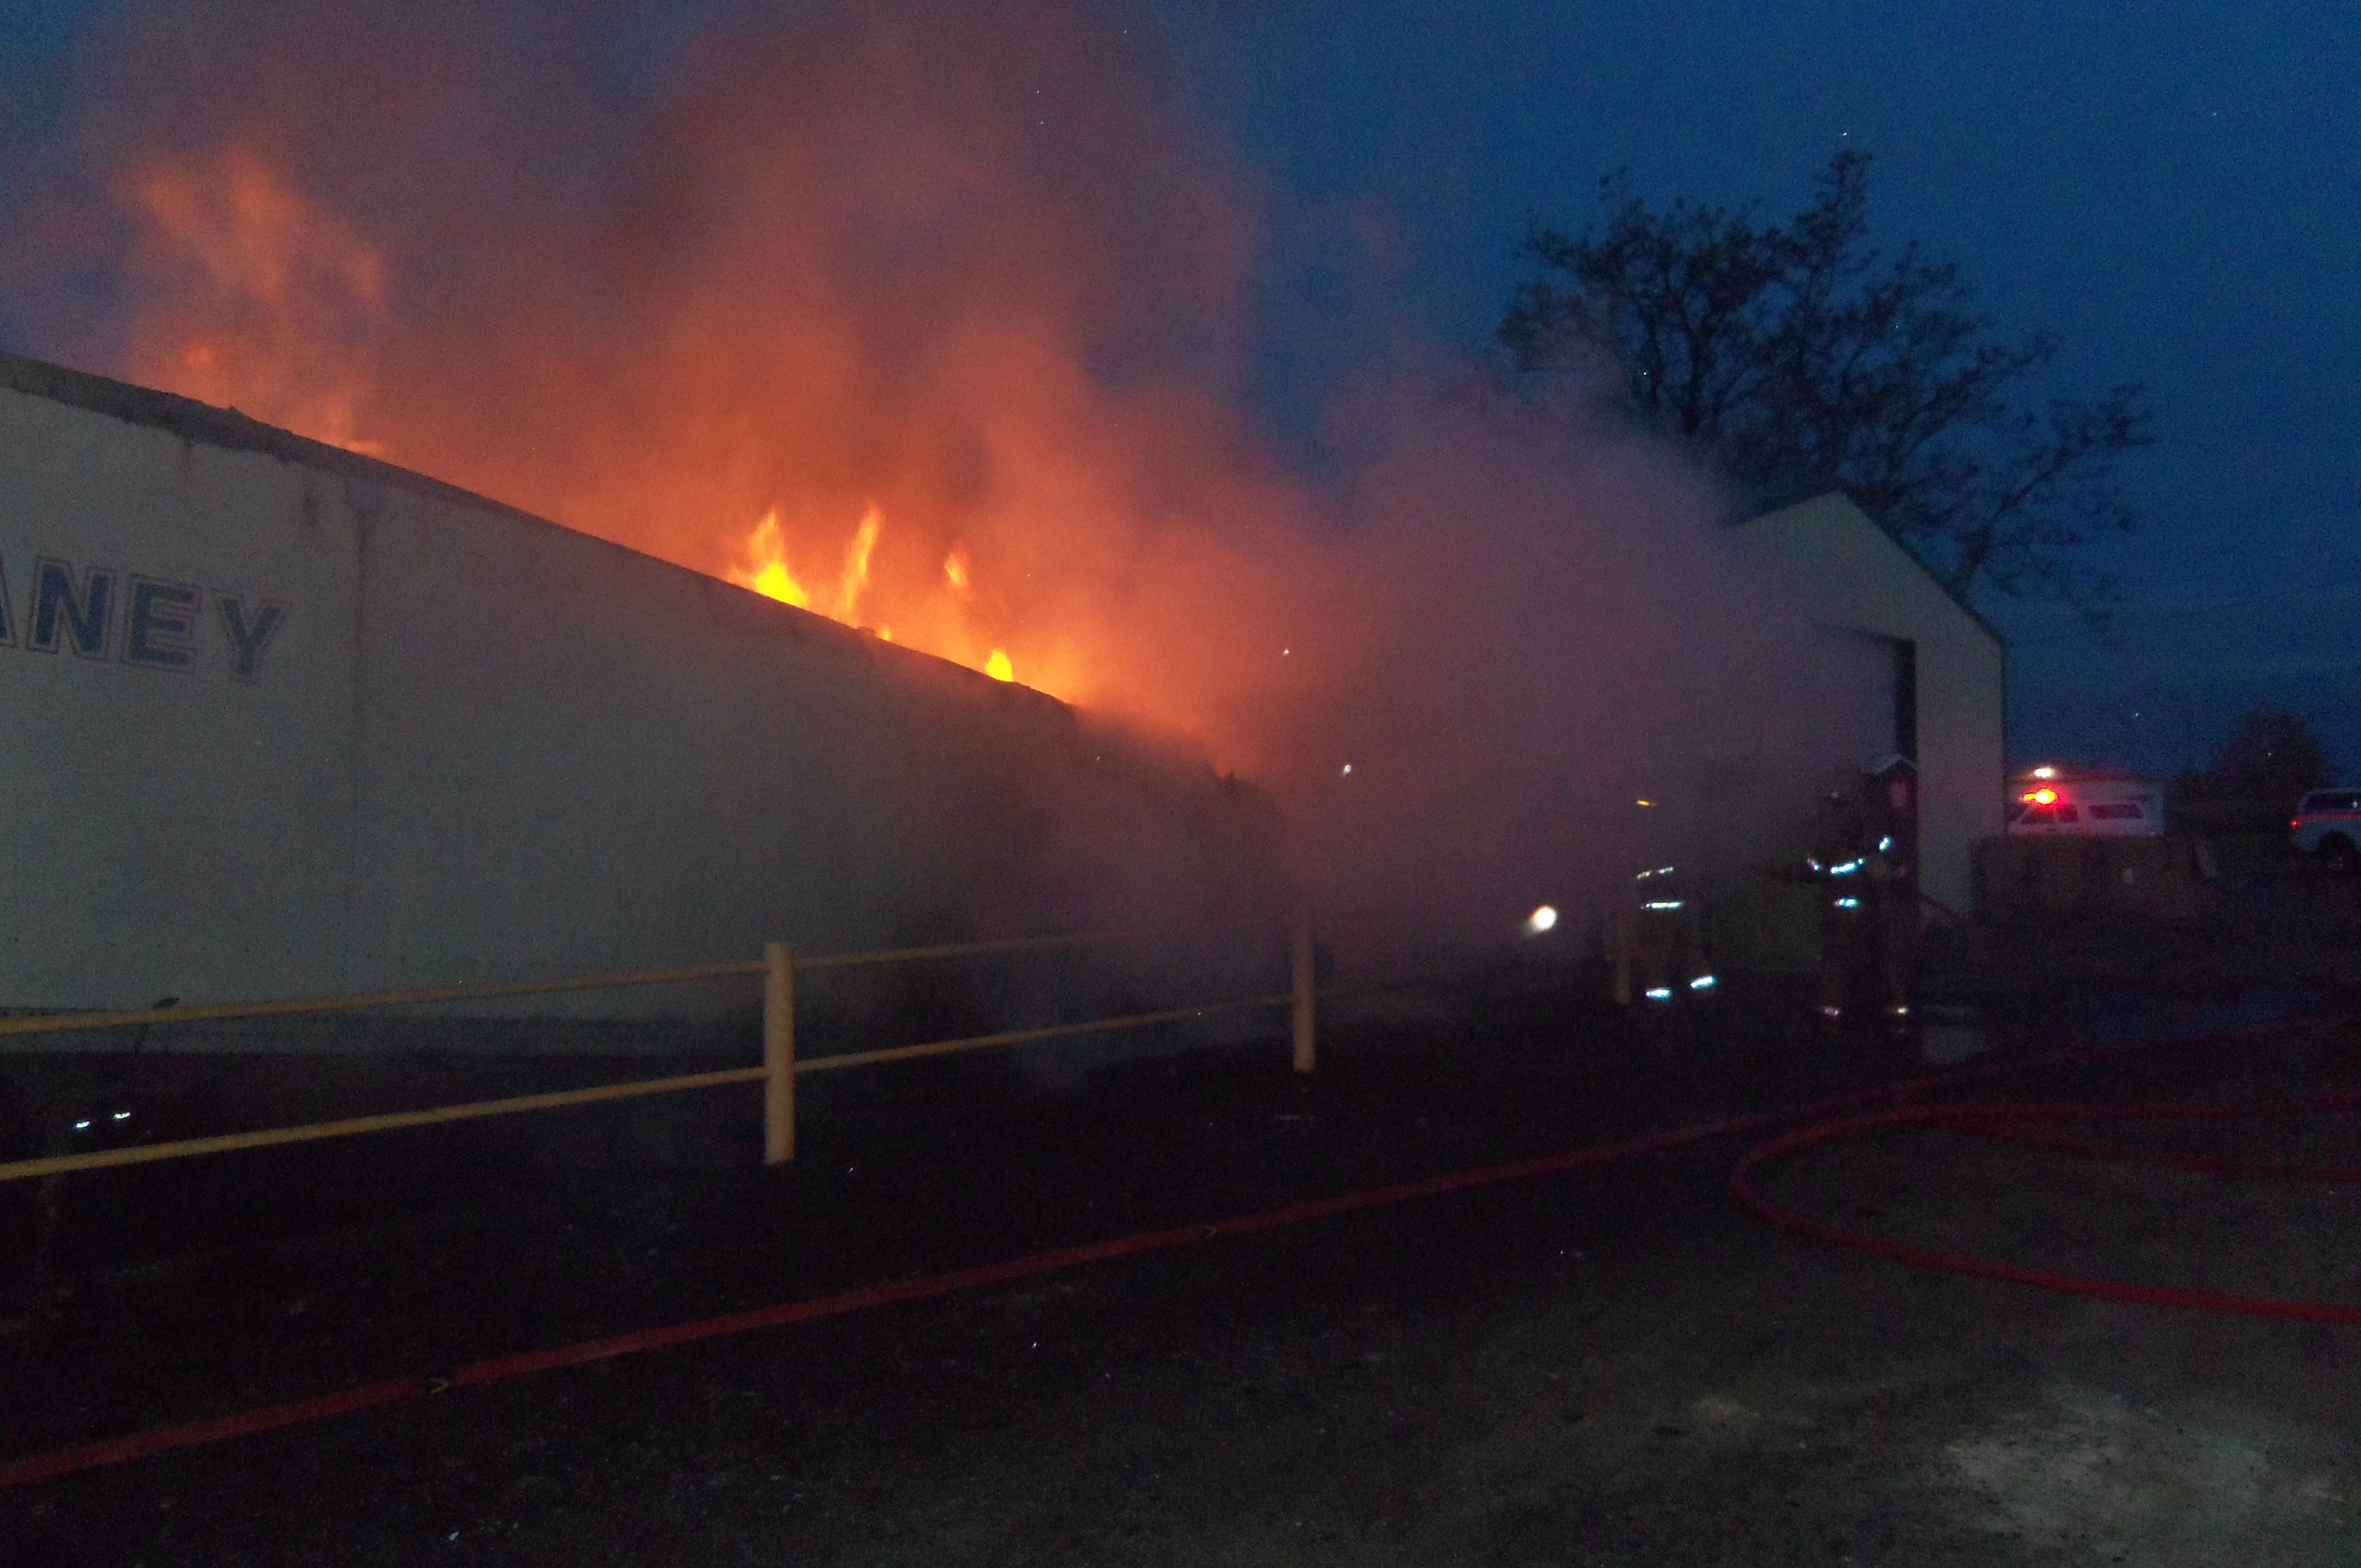 Trailer on fire next to building